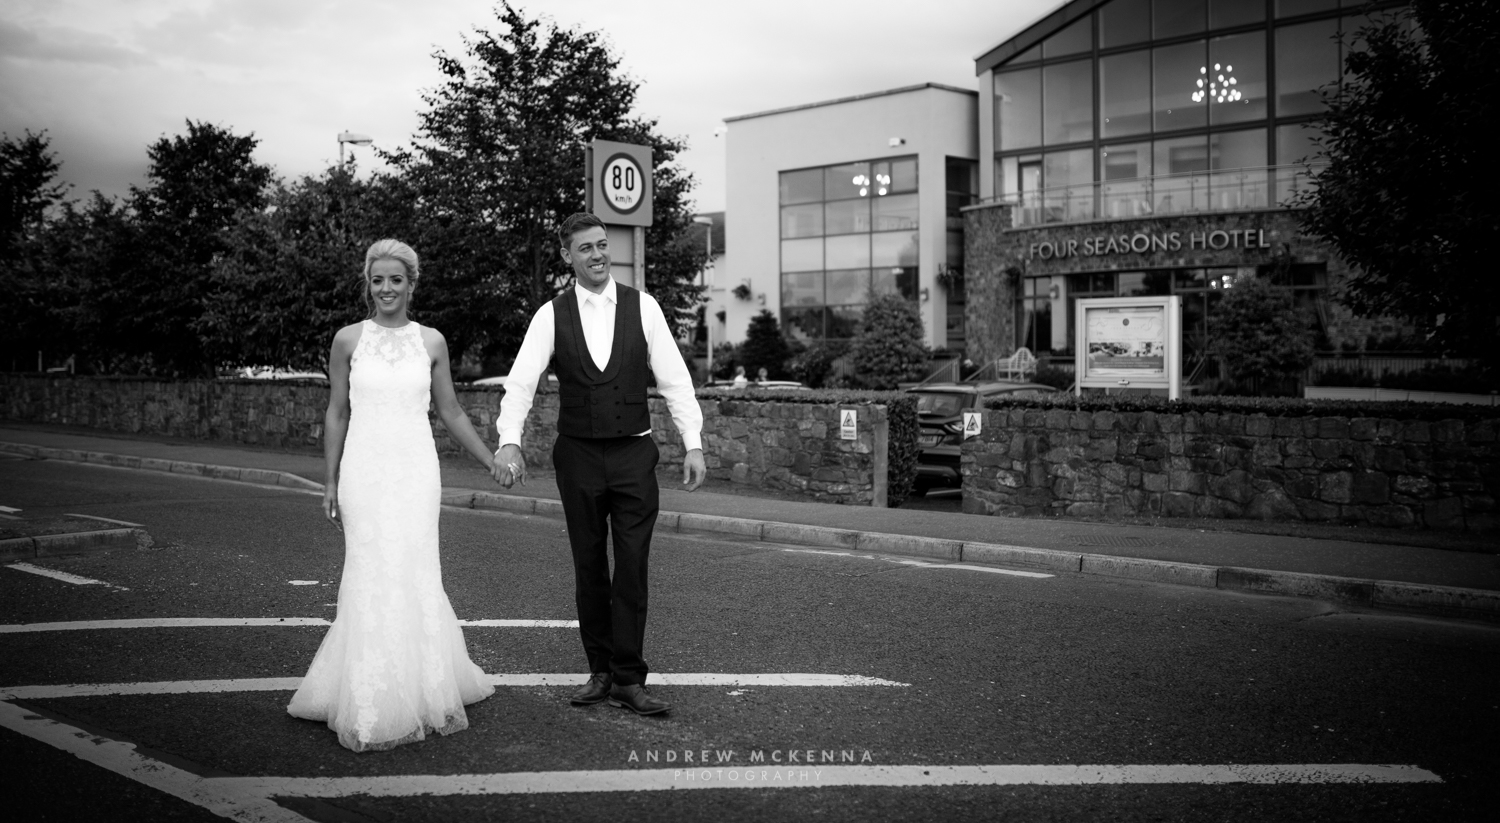 Wedding Photography Carlingford, County Louth Four Seasons hotel, Photography By Andrew McKenna Photography Newcastle County Down, Northern Ireland.